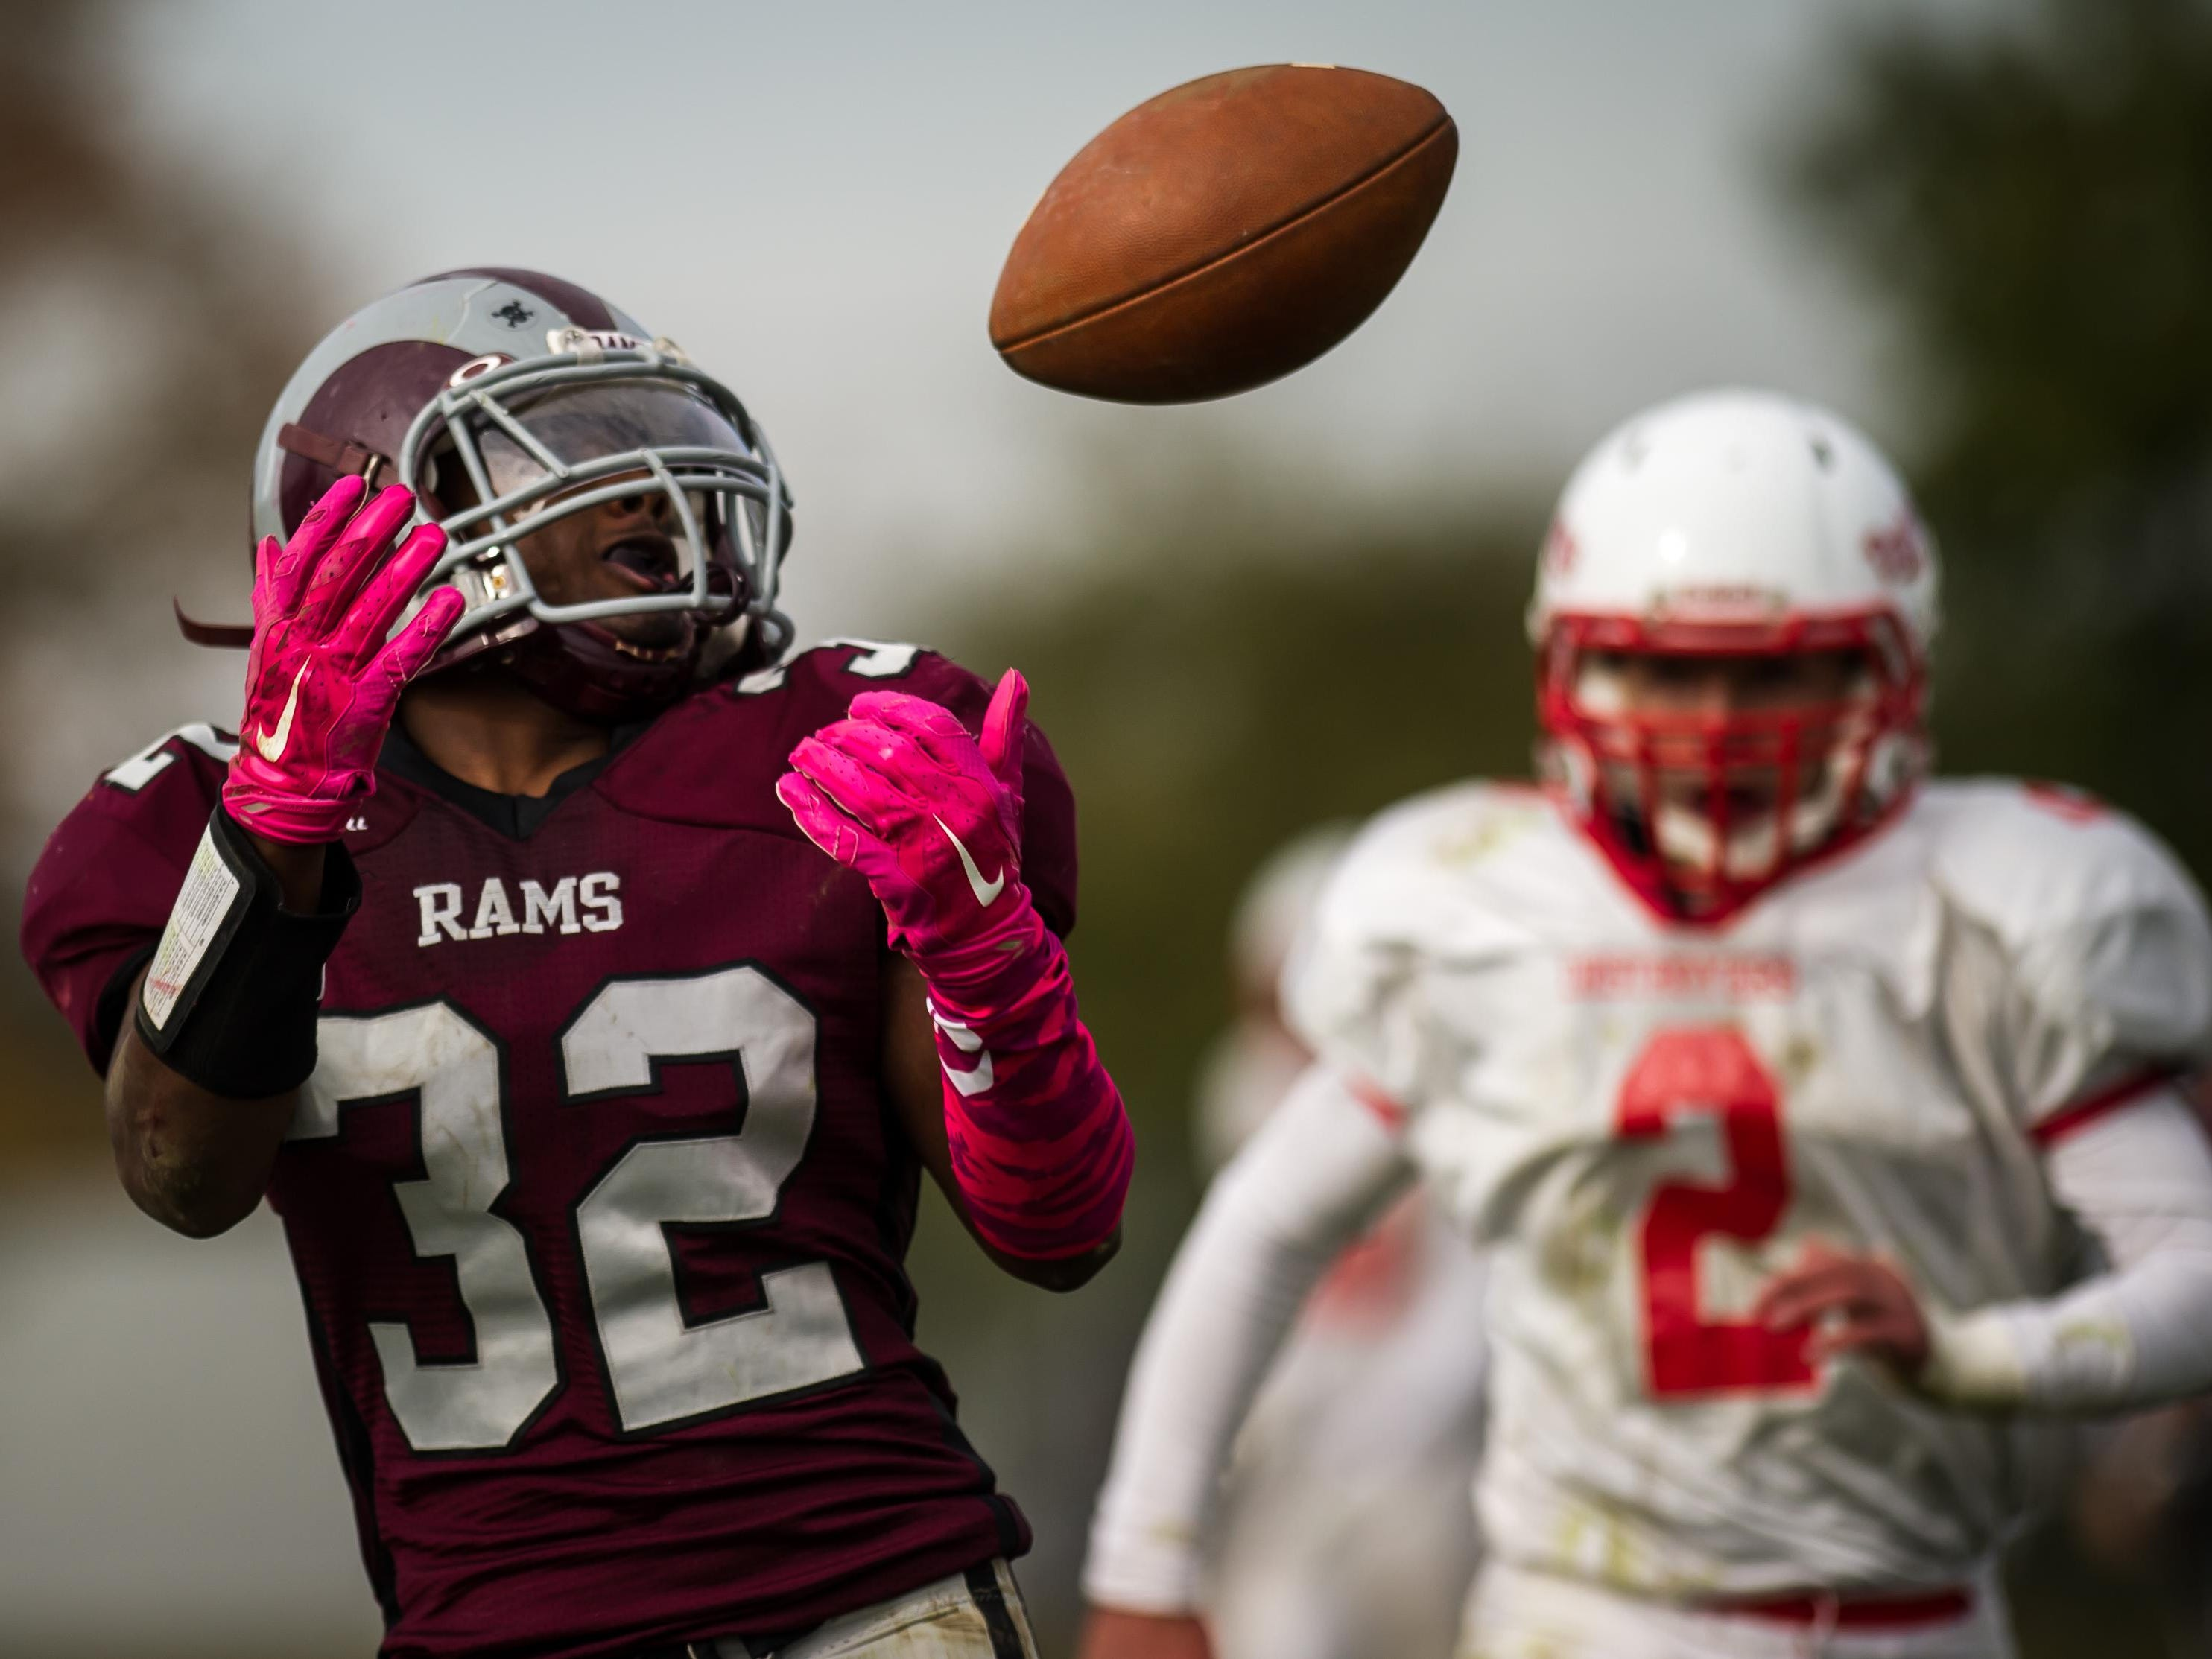 South River's Khaliyl Everett looks to make a reception in front of Dunellen's Mike Harmon in the second quarter of their game on Sat. Oct. 31, 2015 in South River. Photo by Jeff Granit